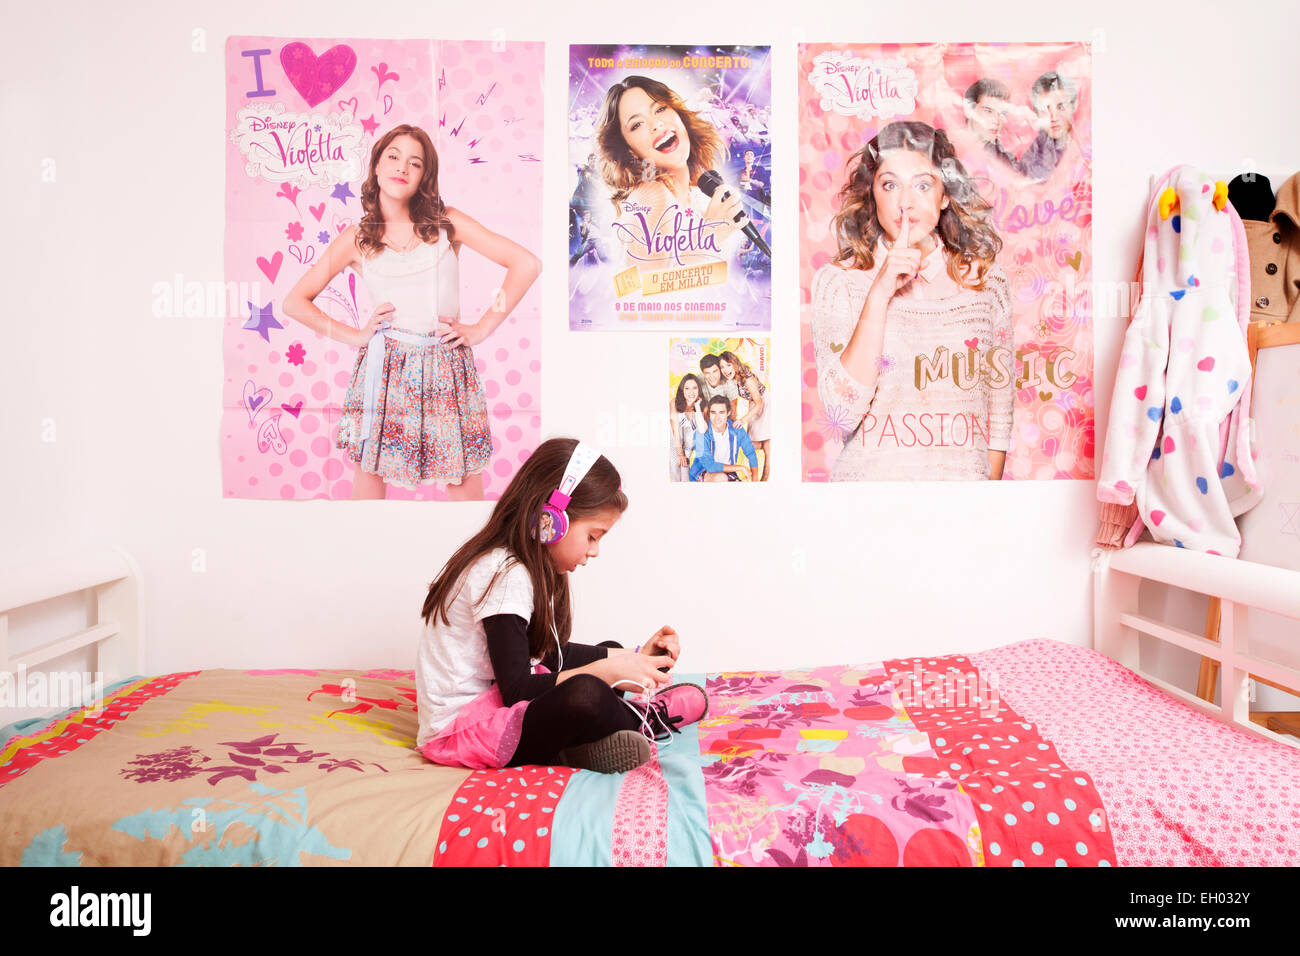 Violetta child fan listening to the TV series music on her bedroom   covered with Violetta posters. - Stock Image